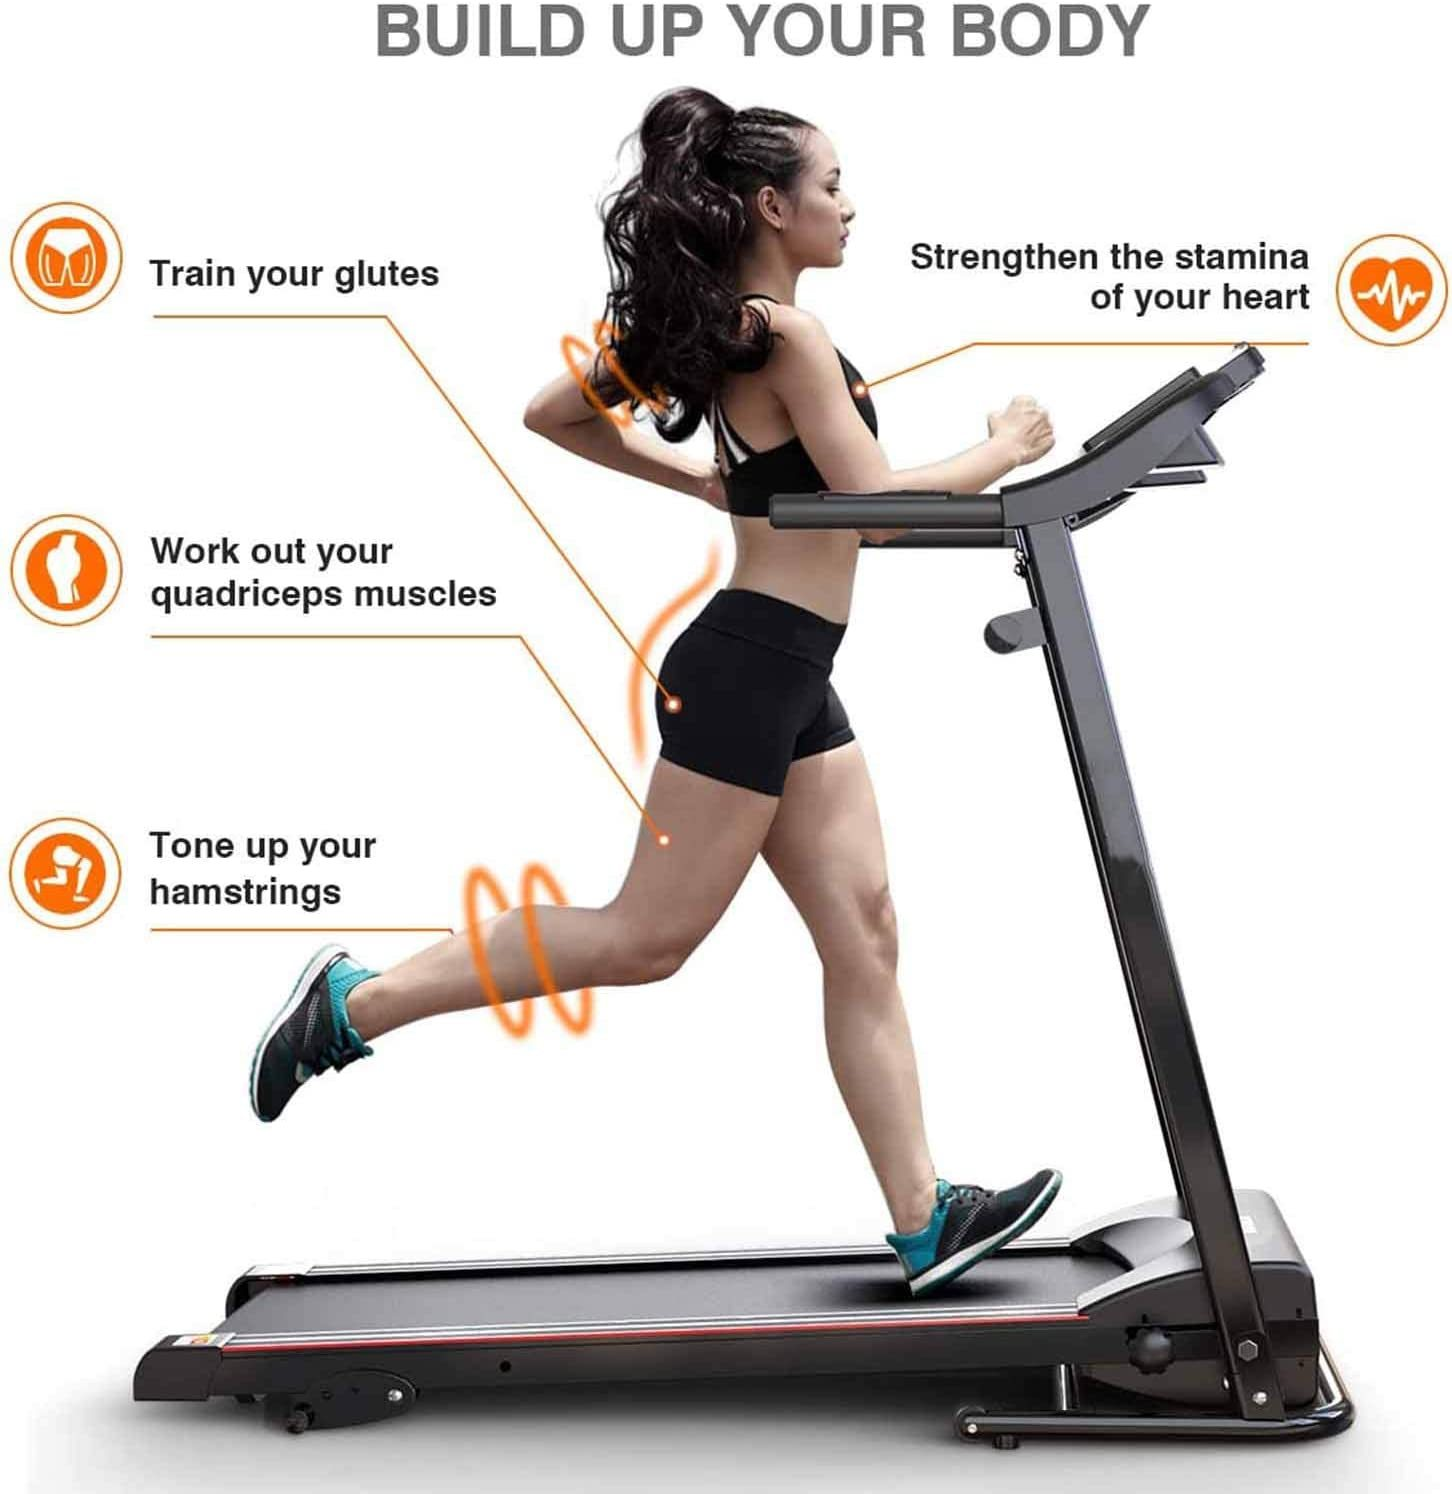 Treadmills for Home Folding Electric Motorized Running Machine LED Display Safety Key 12 Preset Programs Exercise Fitness Trainer Equipment Gym Office